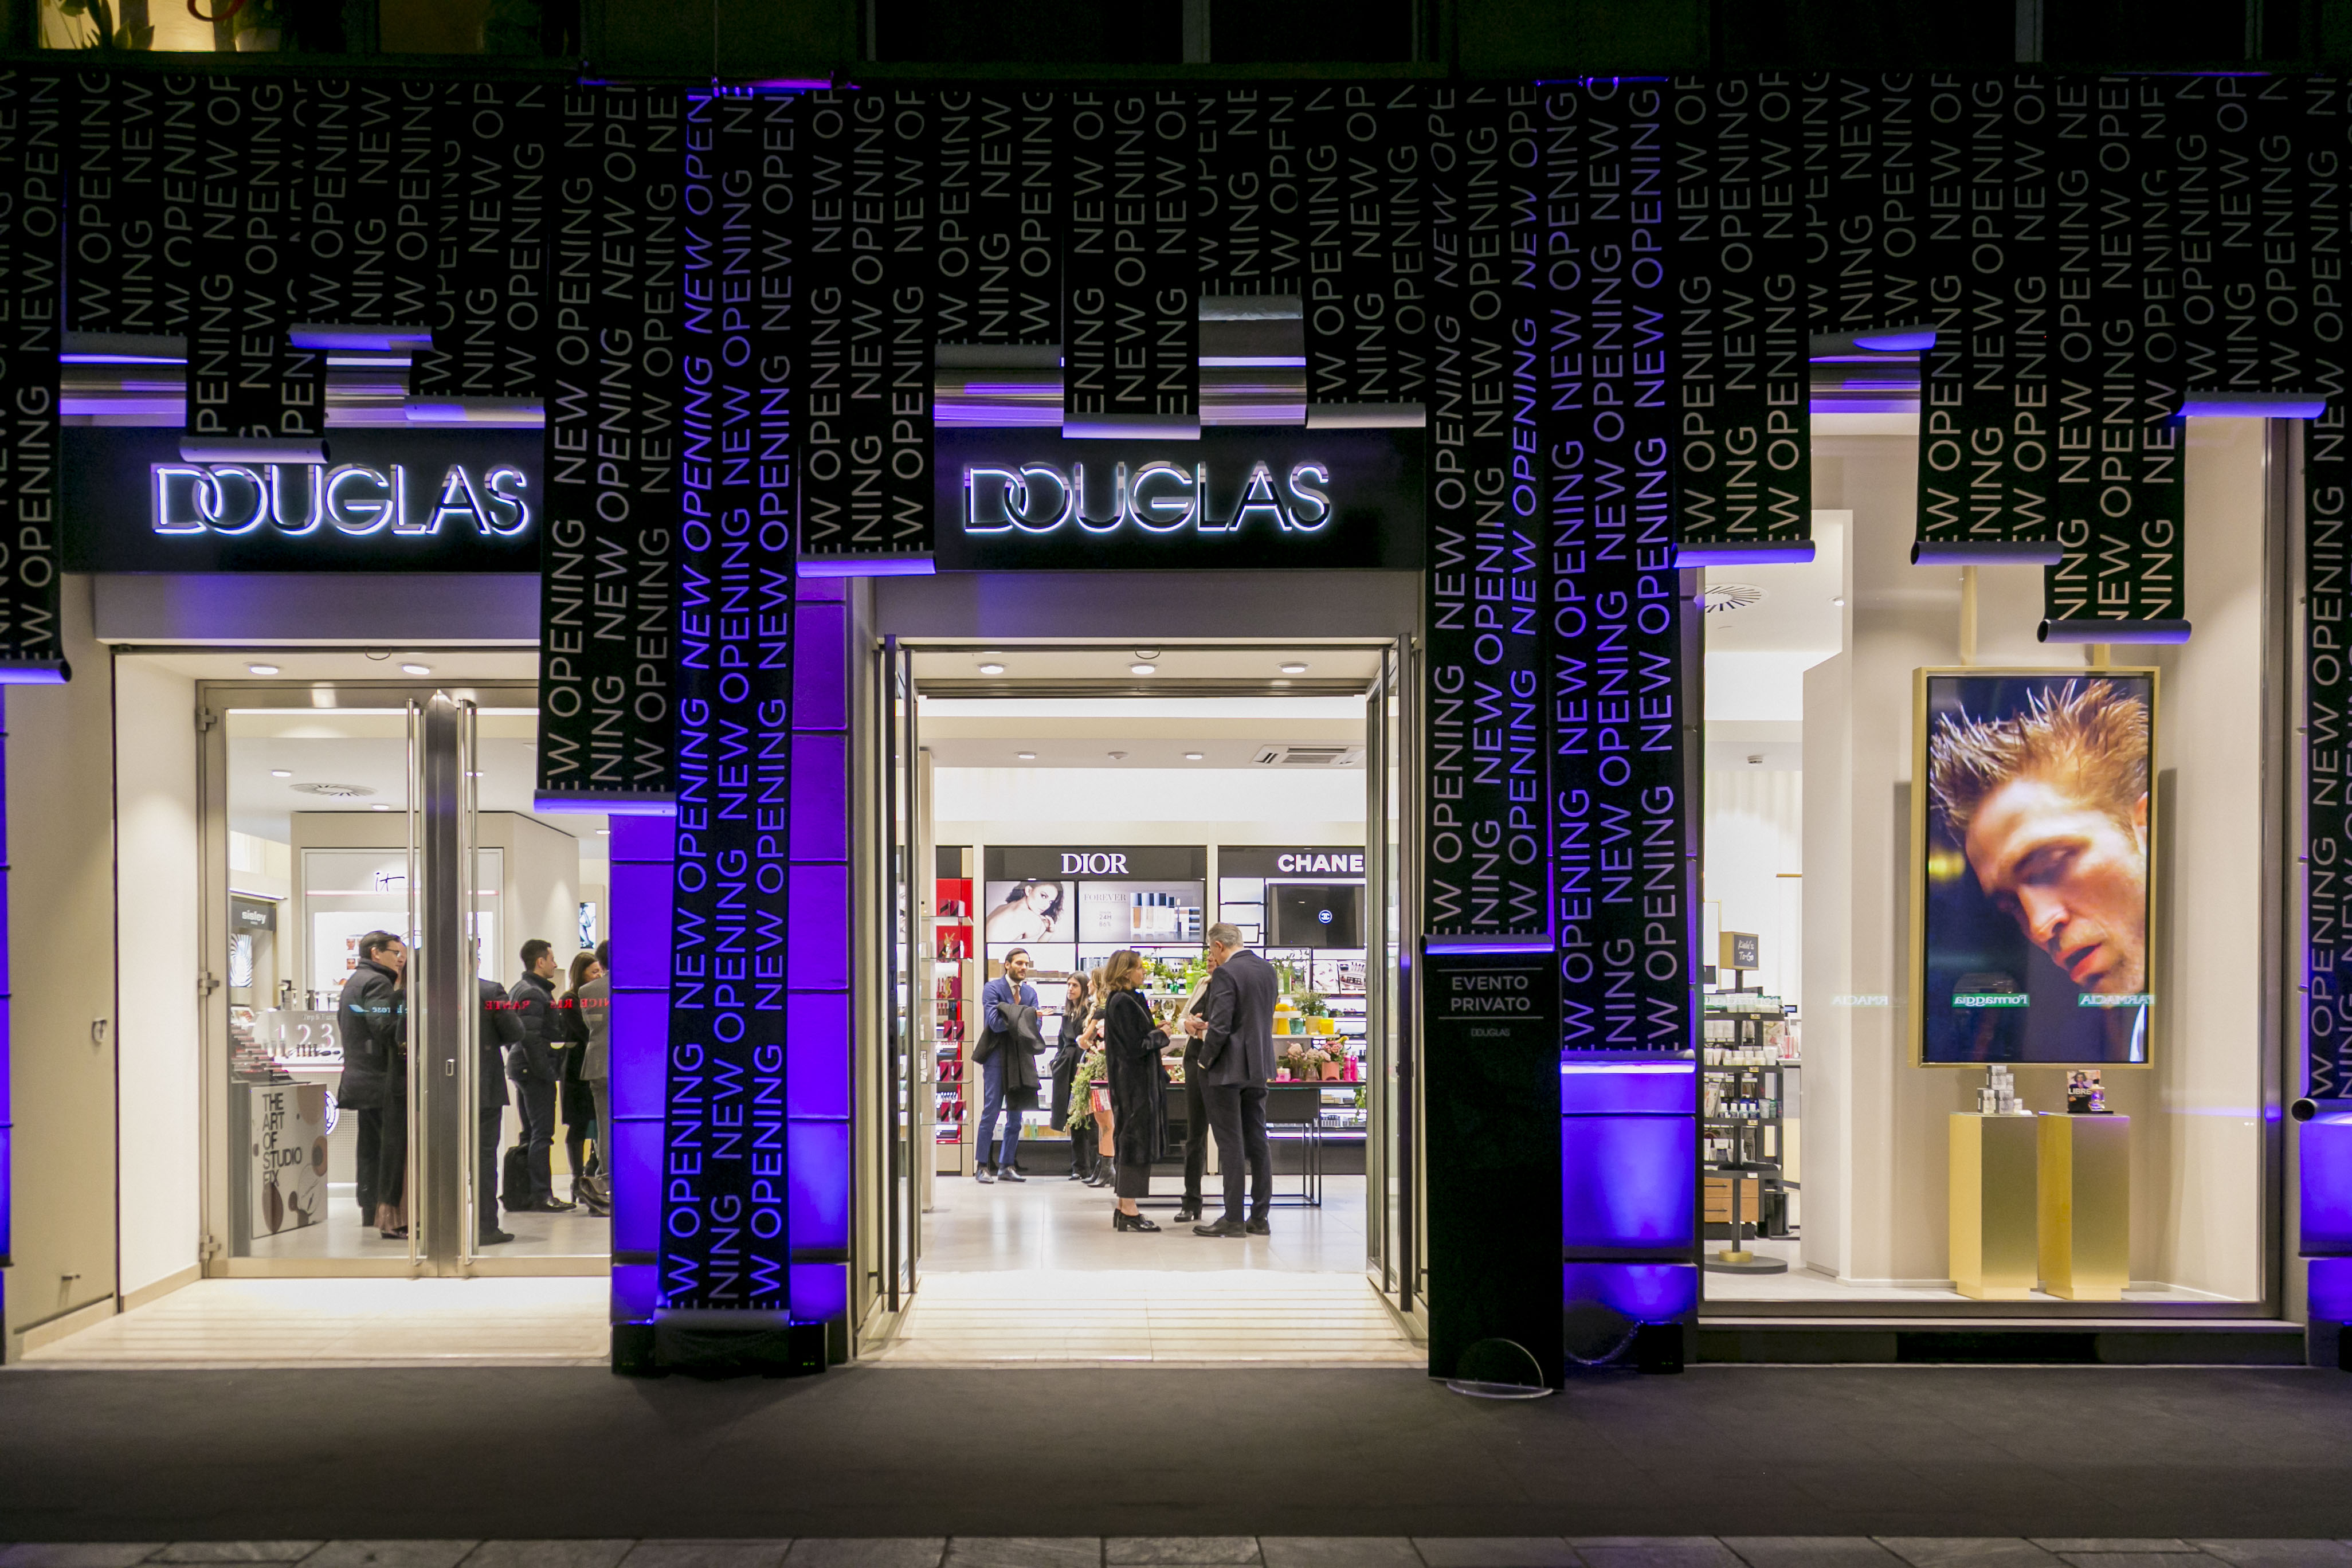 The revamped Douglas store in Milan.